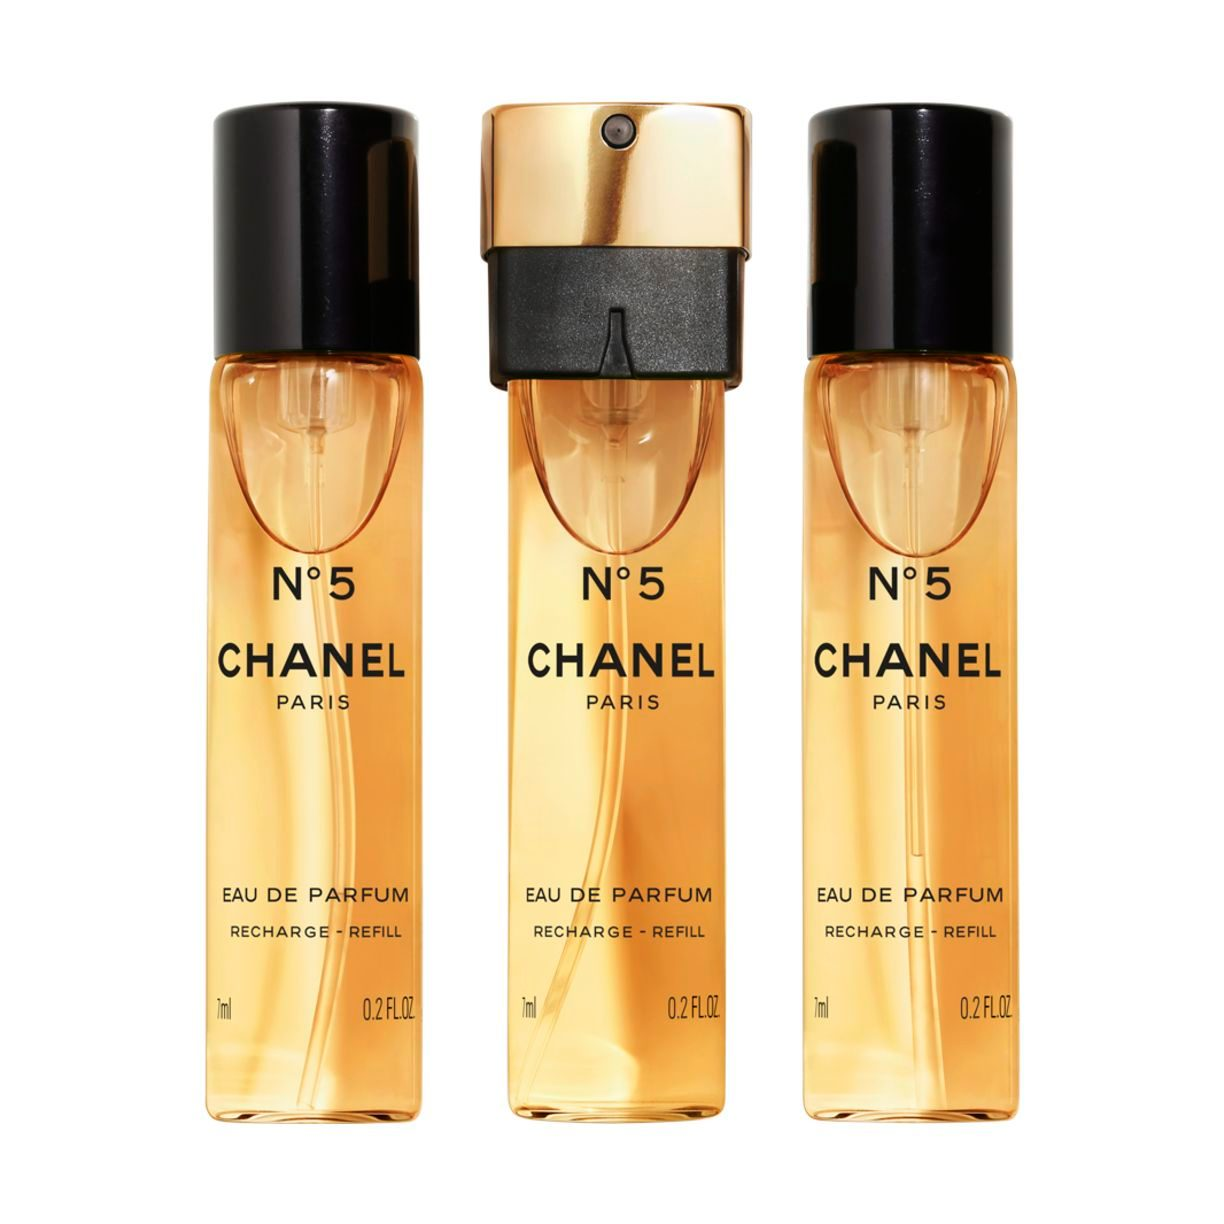 N°5 N°5 EAU DE PARFUM MINI TWIST AND SPRAY 3x7ml Recharge